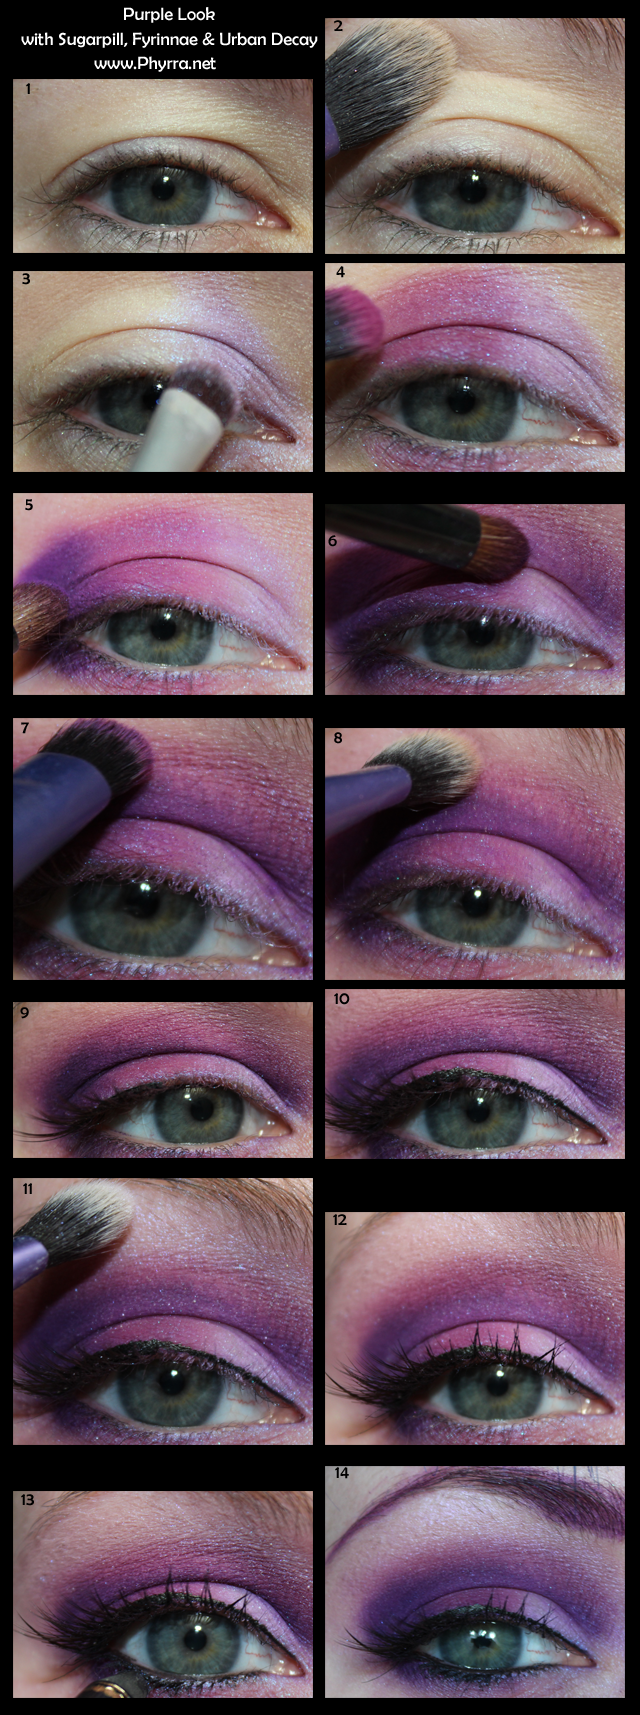 Sugarpill purple look tutorial best makeup tutorials pinterest sugarpill purple look tutorial baditri Image collections